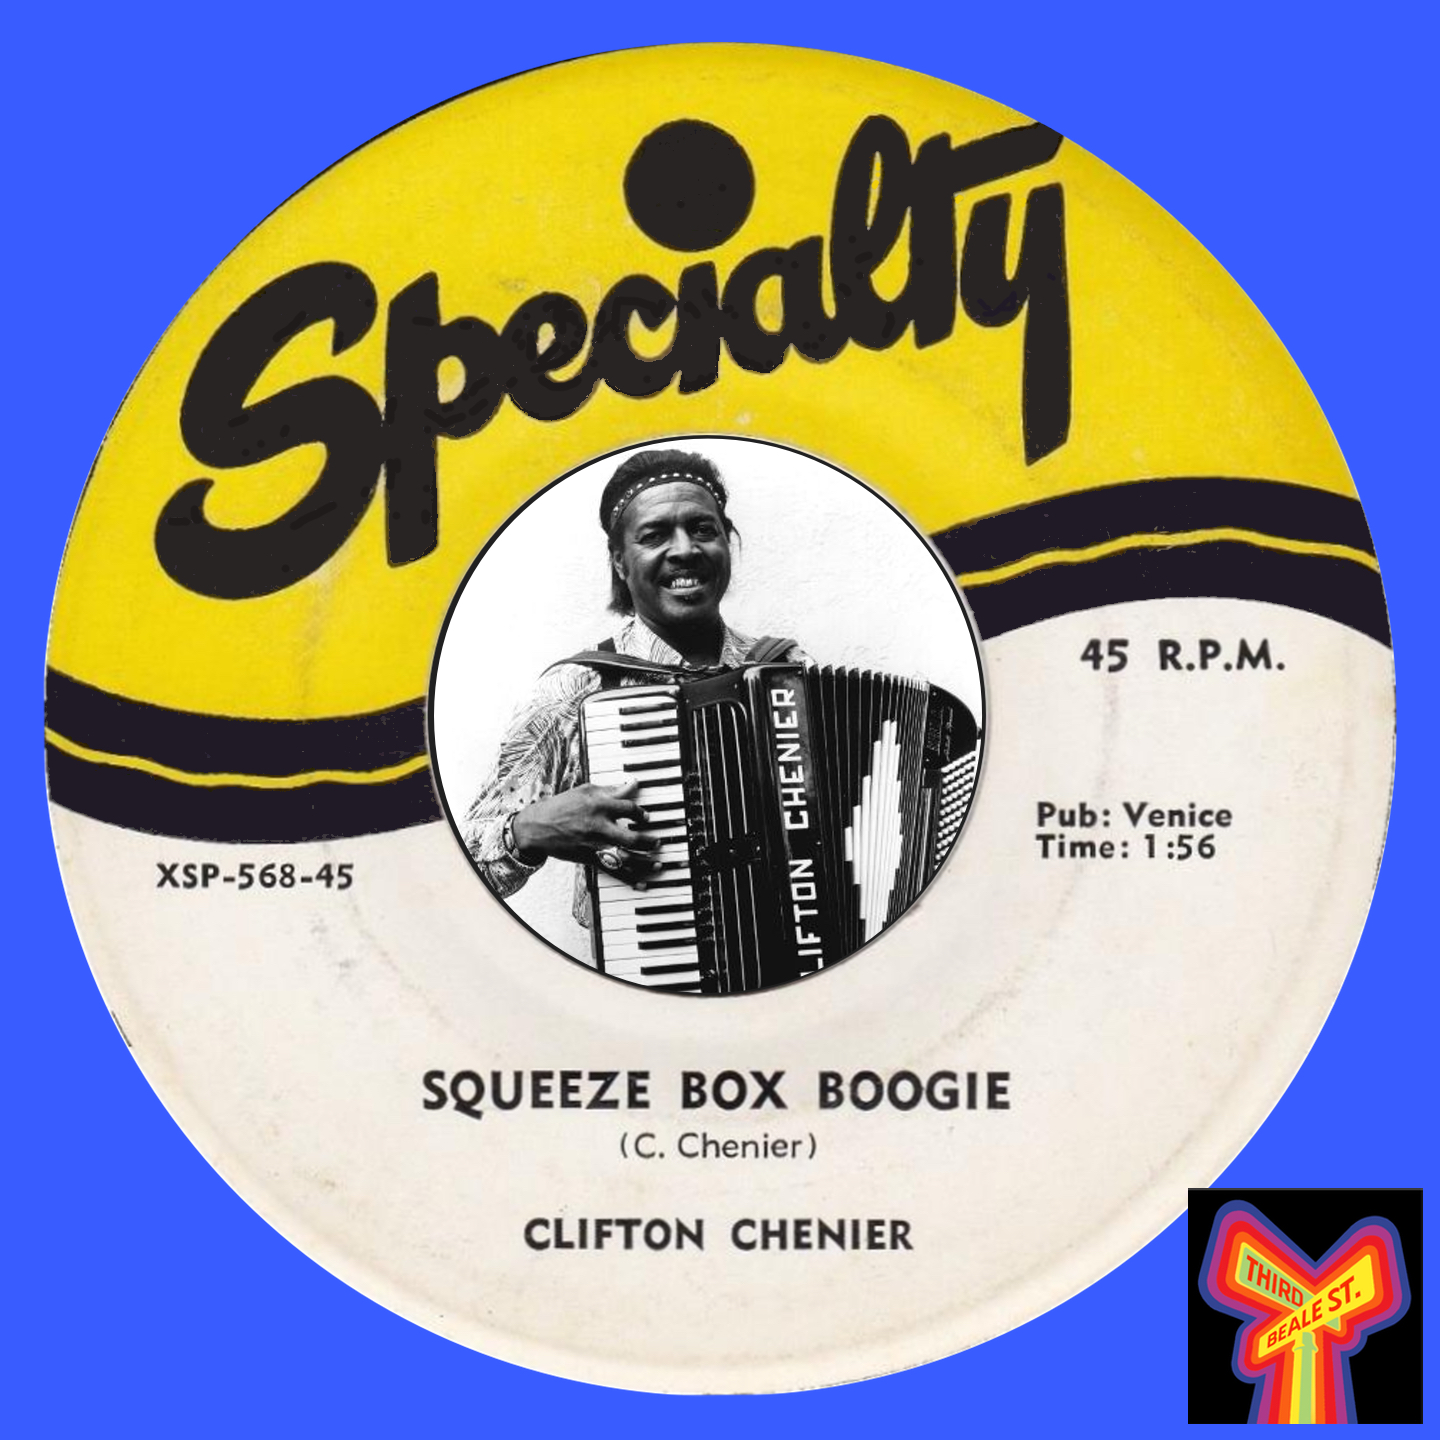 Caption: The King of Zydeco, Clifton Chenier.